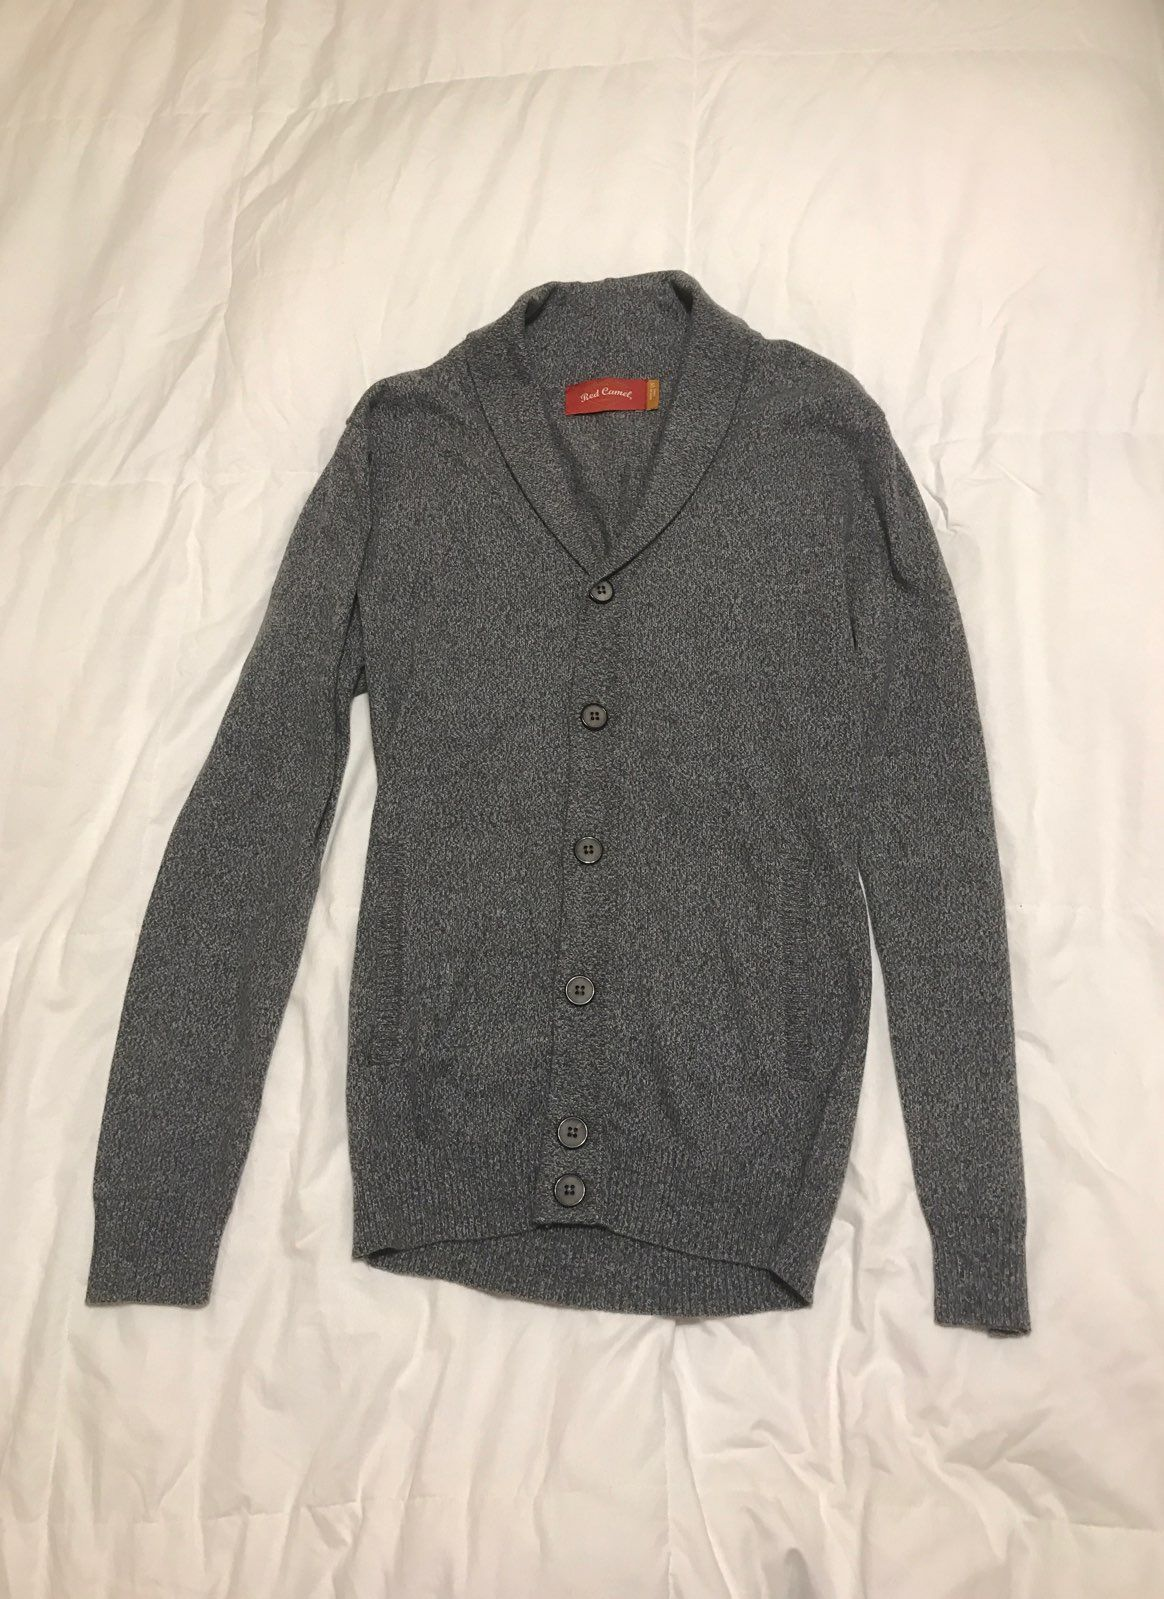 Men's Red Camel Cardigan Size Small - Mercari: BUY & SELL THINGS ...